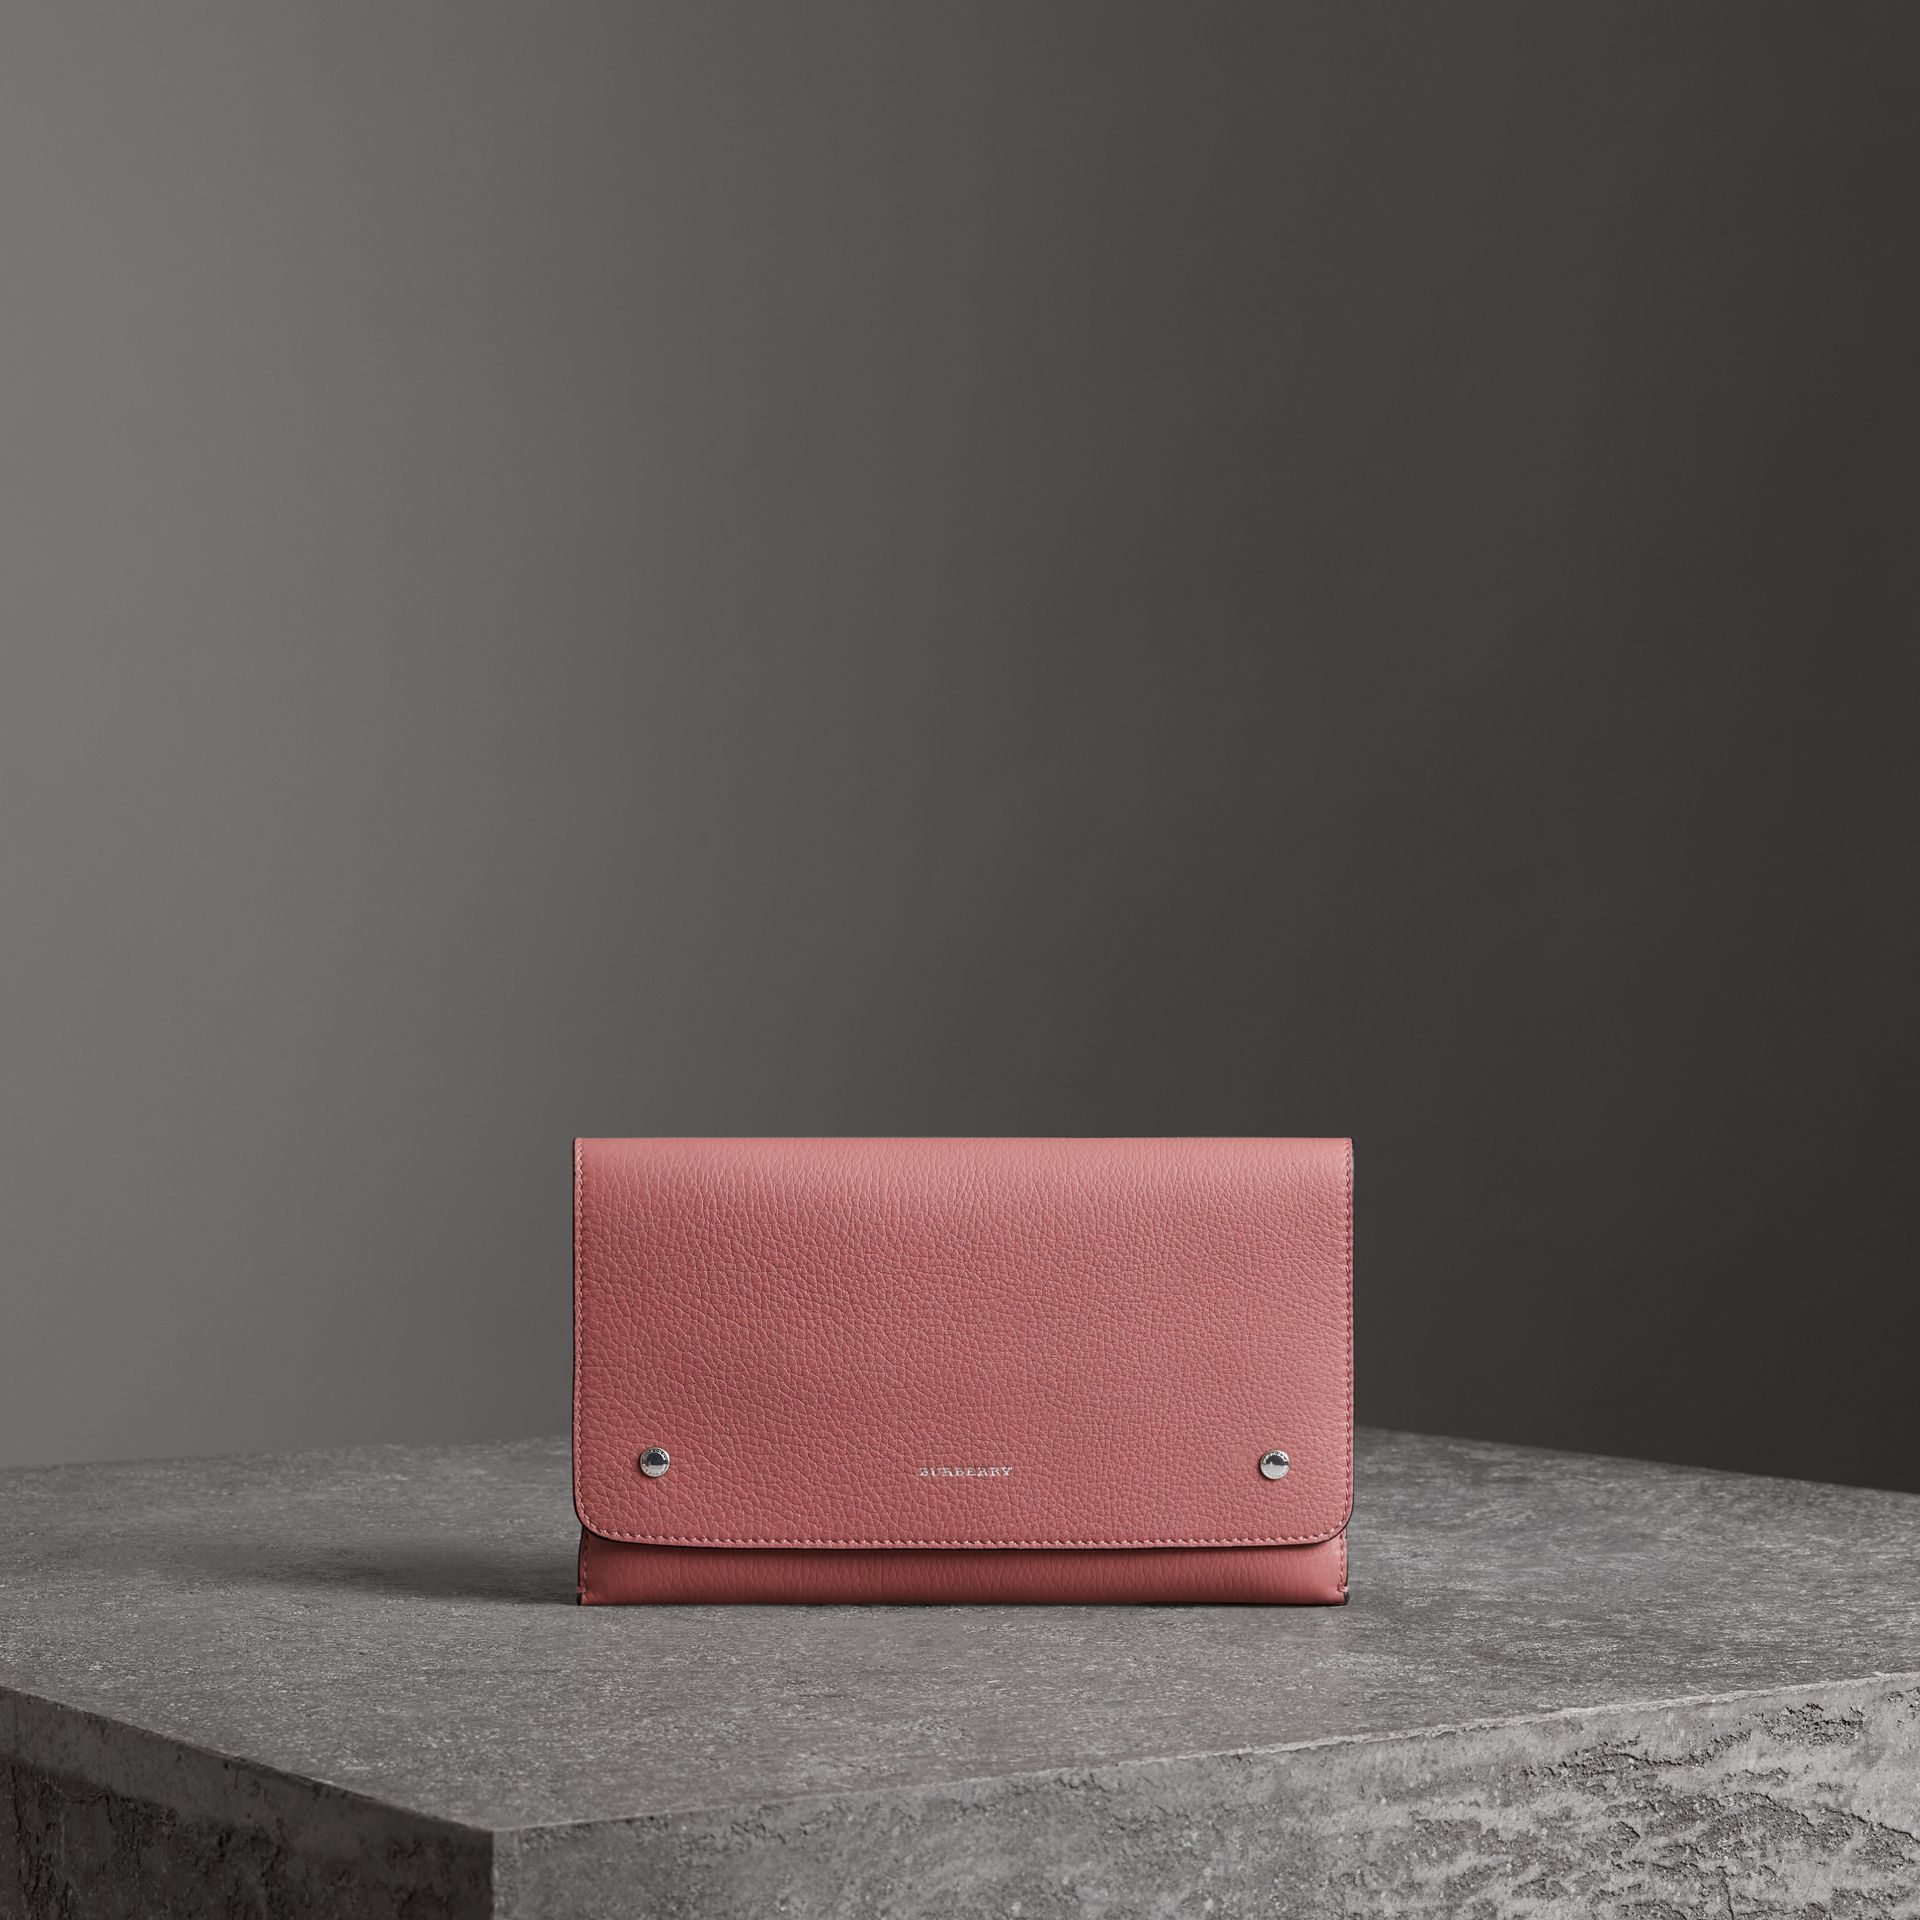 Two-tone Leather Wristlet Clutch in Dusty Rose - Women | Burberry Singapore - gallery image 0